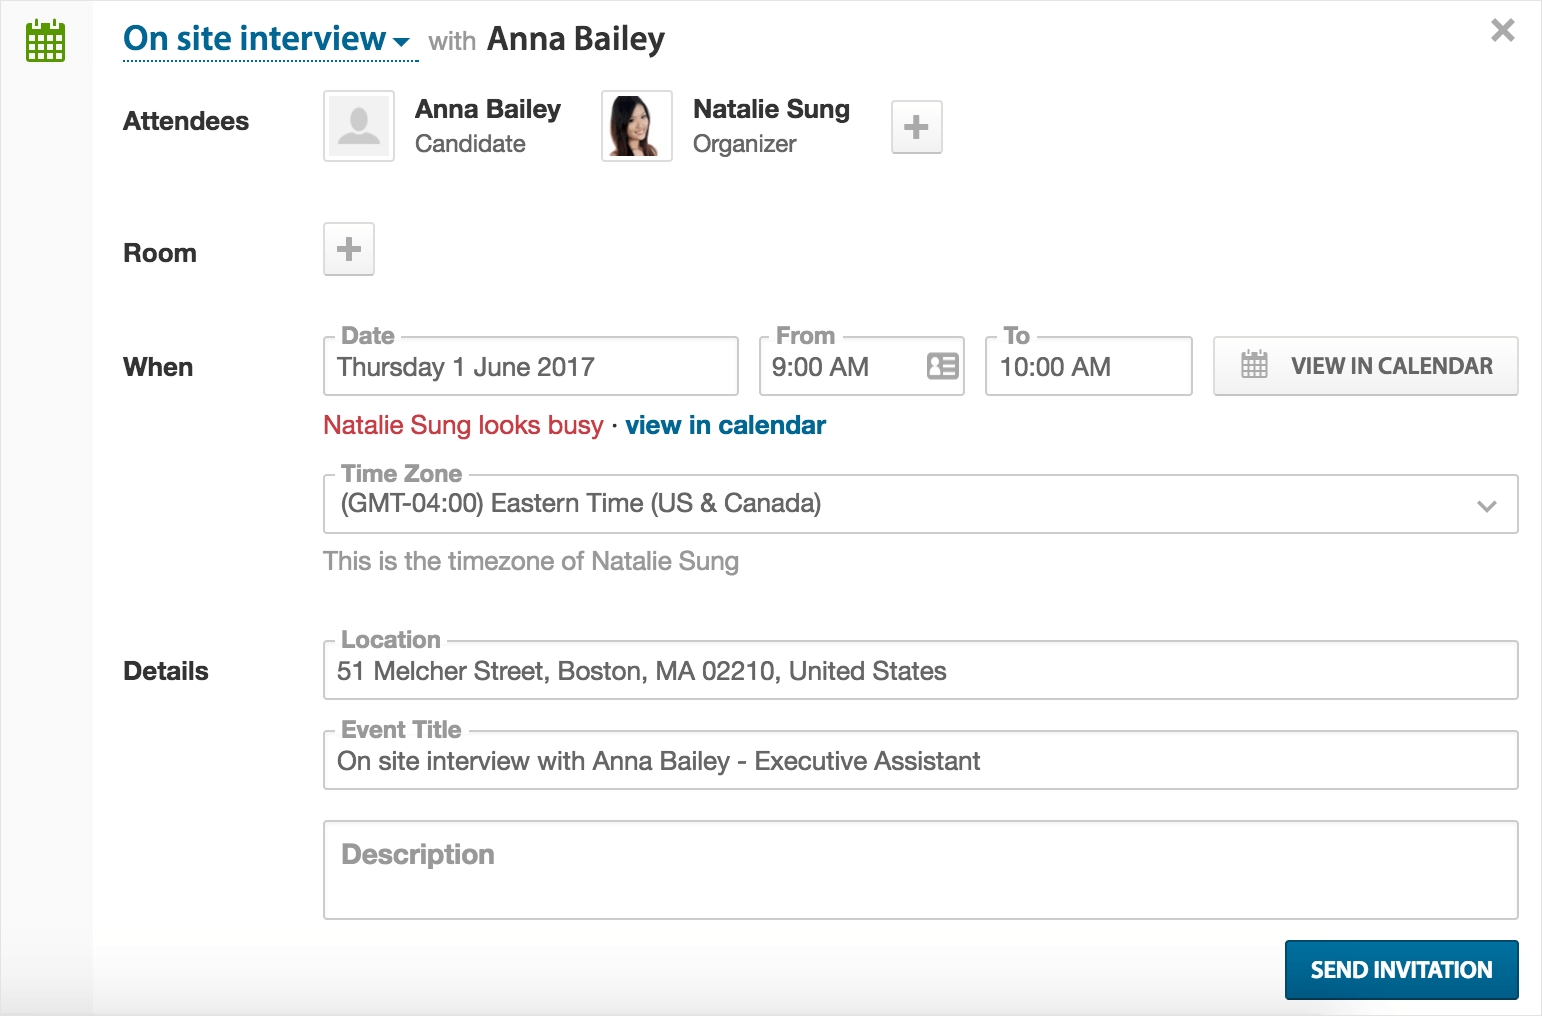 How To Schedule Job Interviews Efficiently: A Guide For